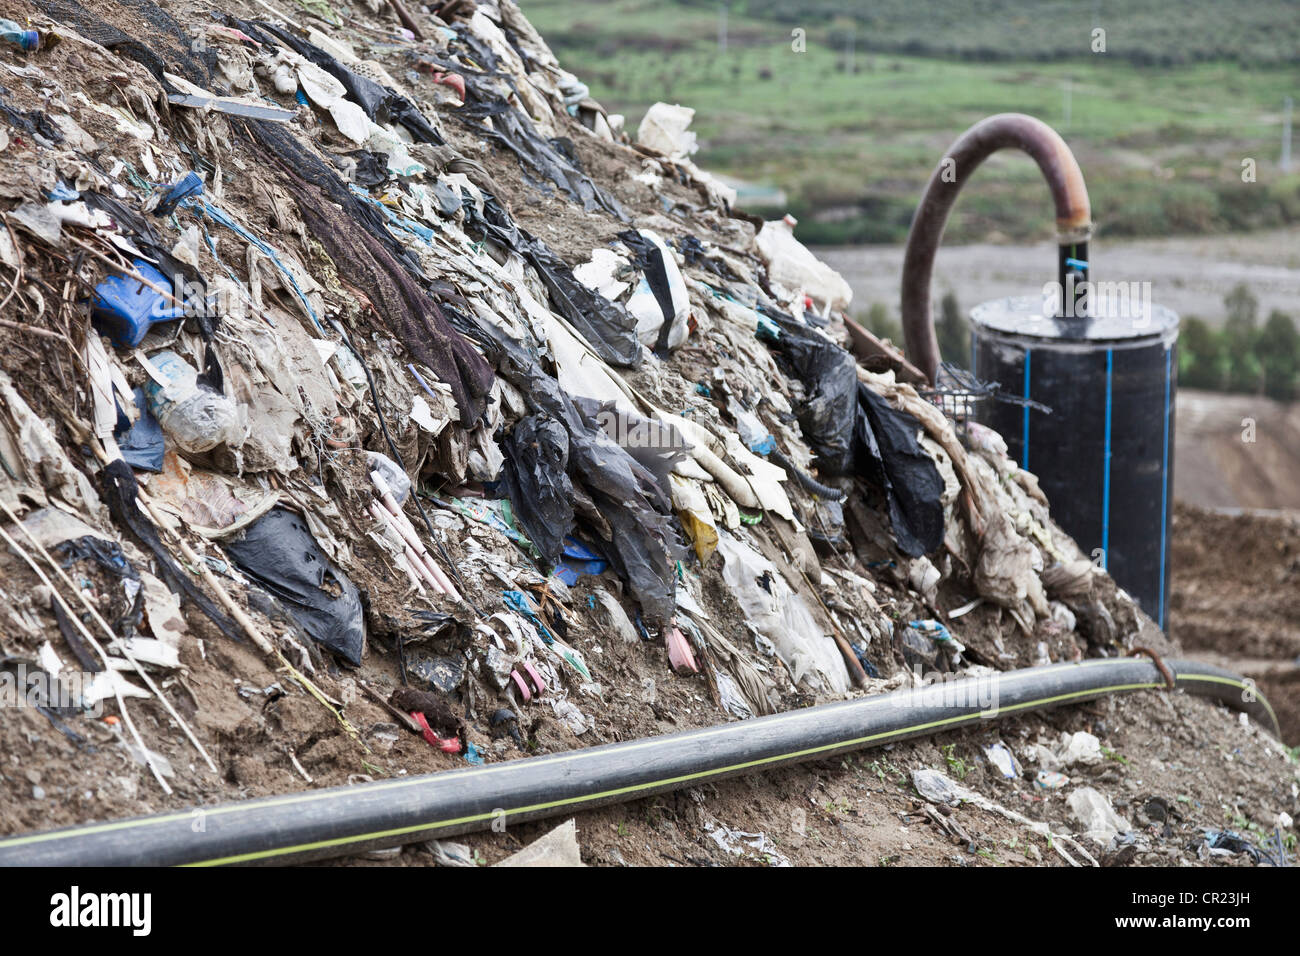 Landfill at garbage collection center - Stock Image